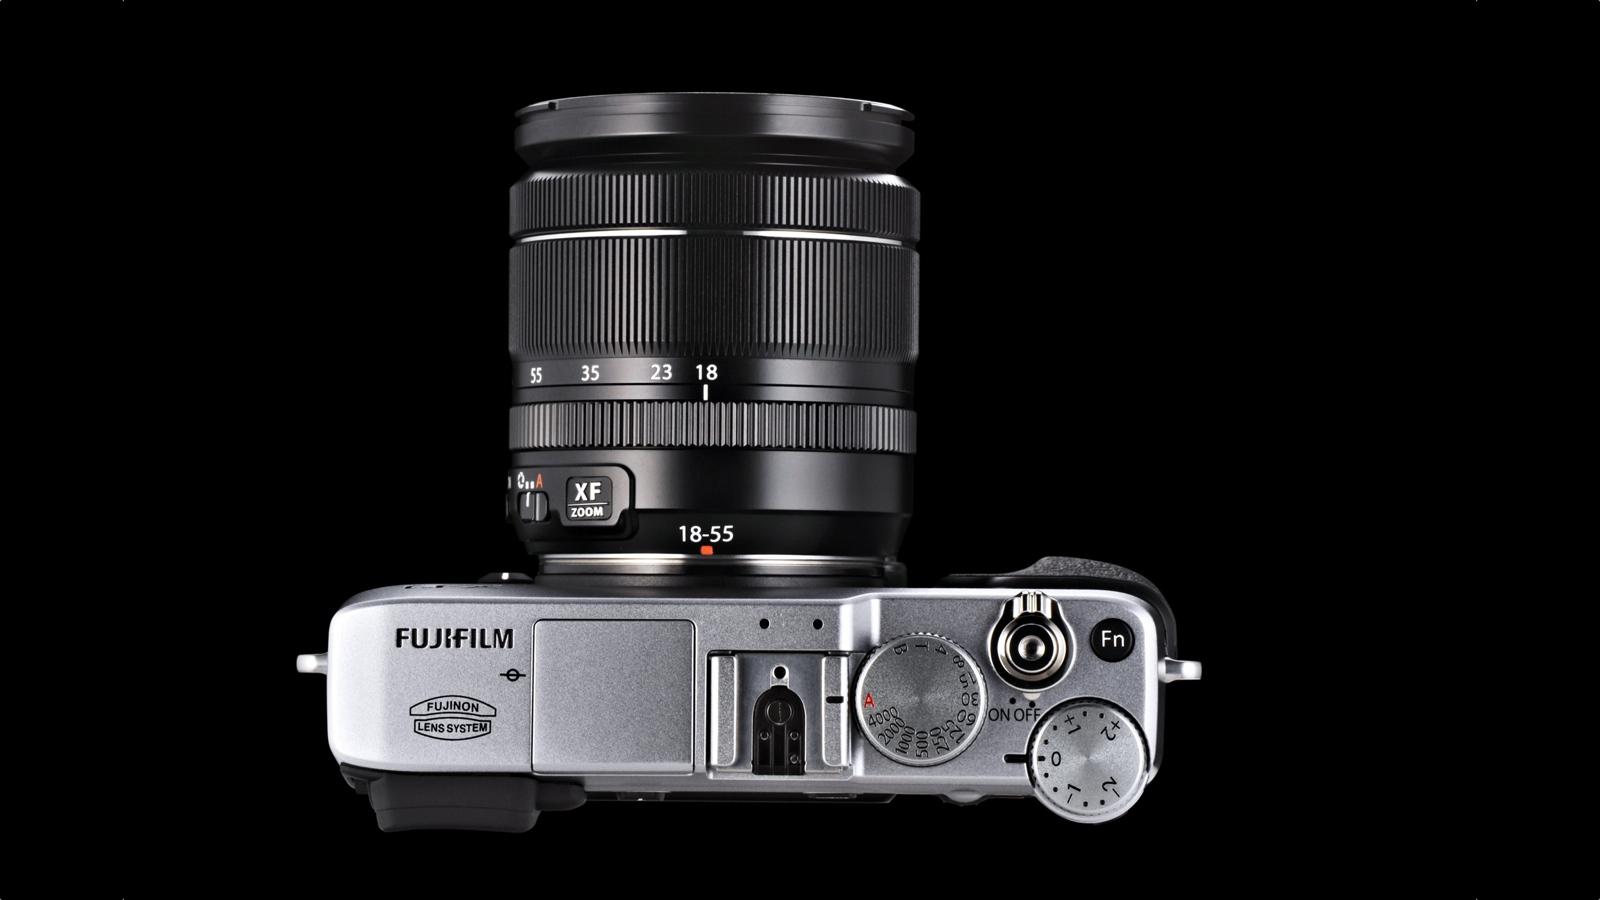 Fujifilm X-E1 Looks Like a Promising Alternative to the X-Pro1